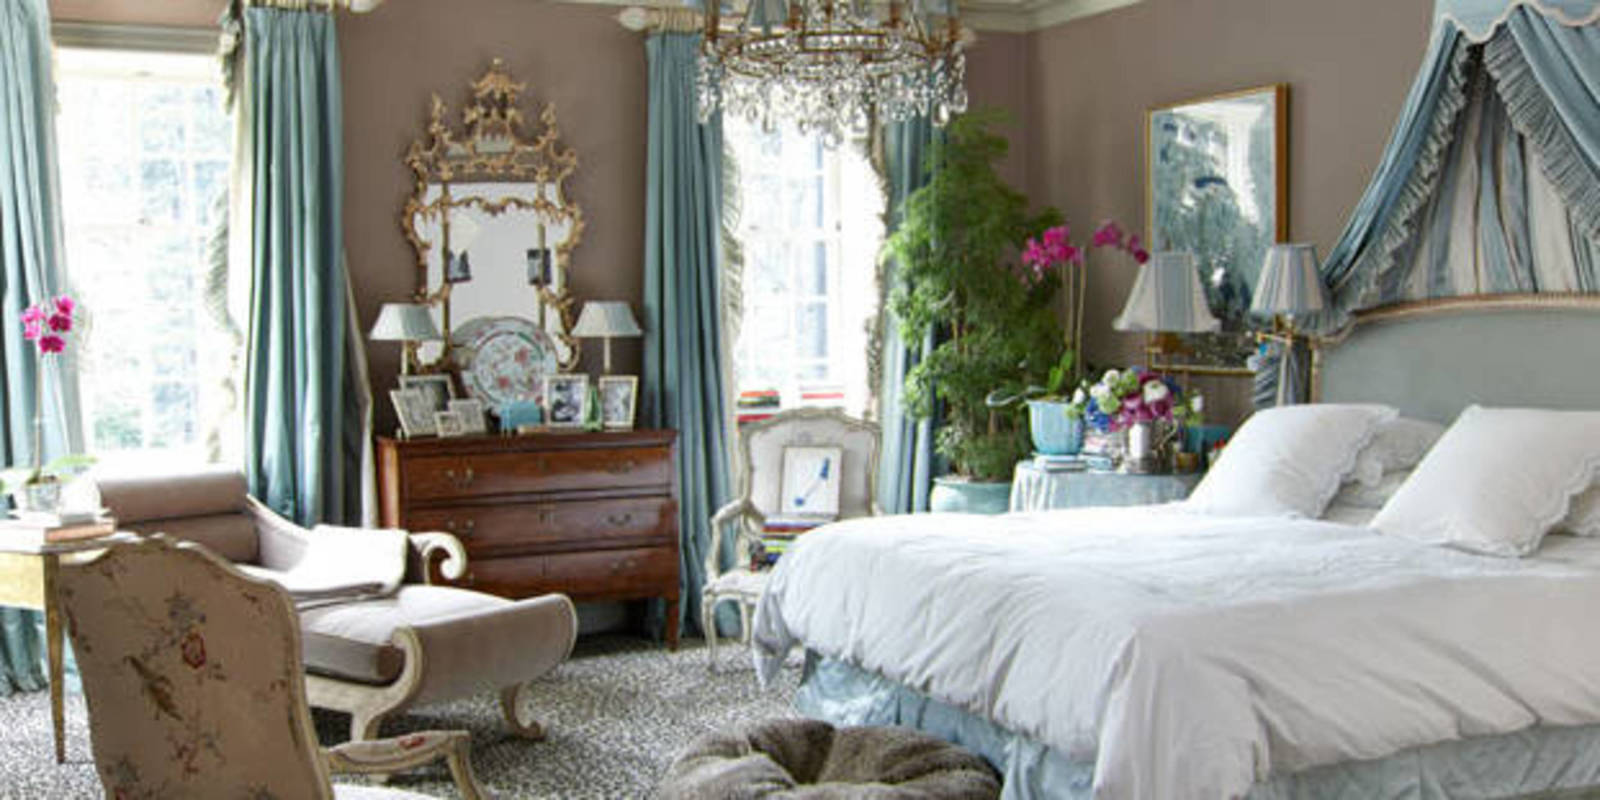 Romantic Homes Decorating: How To Make A Room Romantic